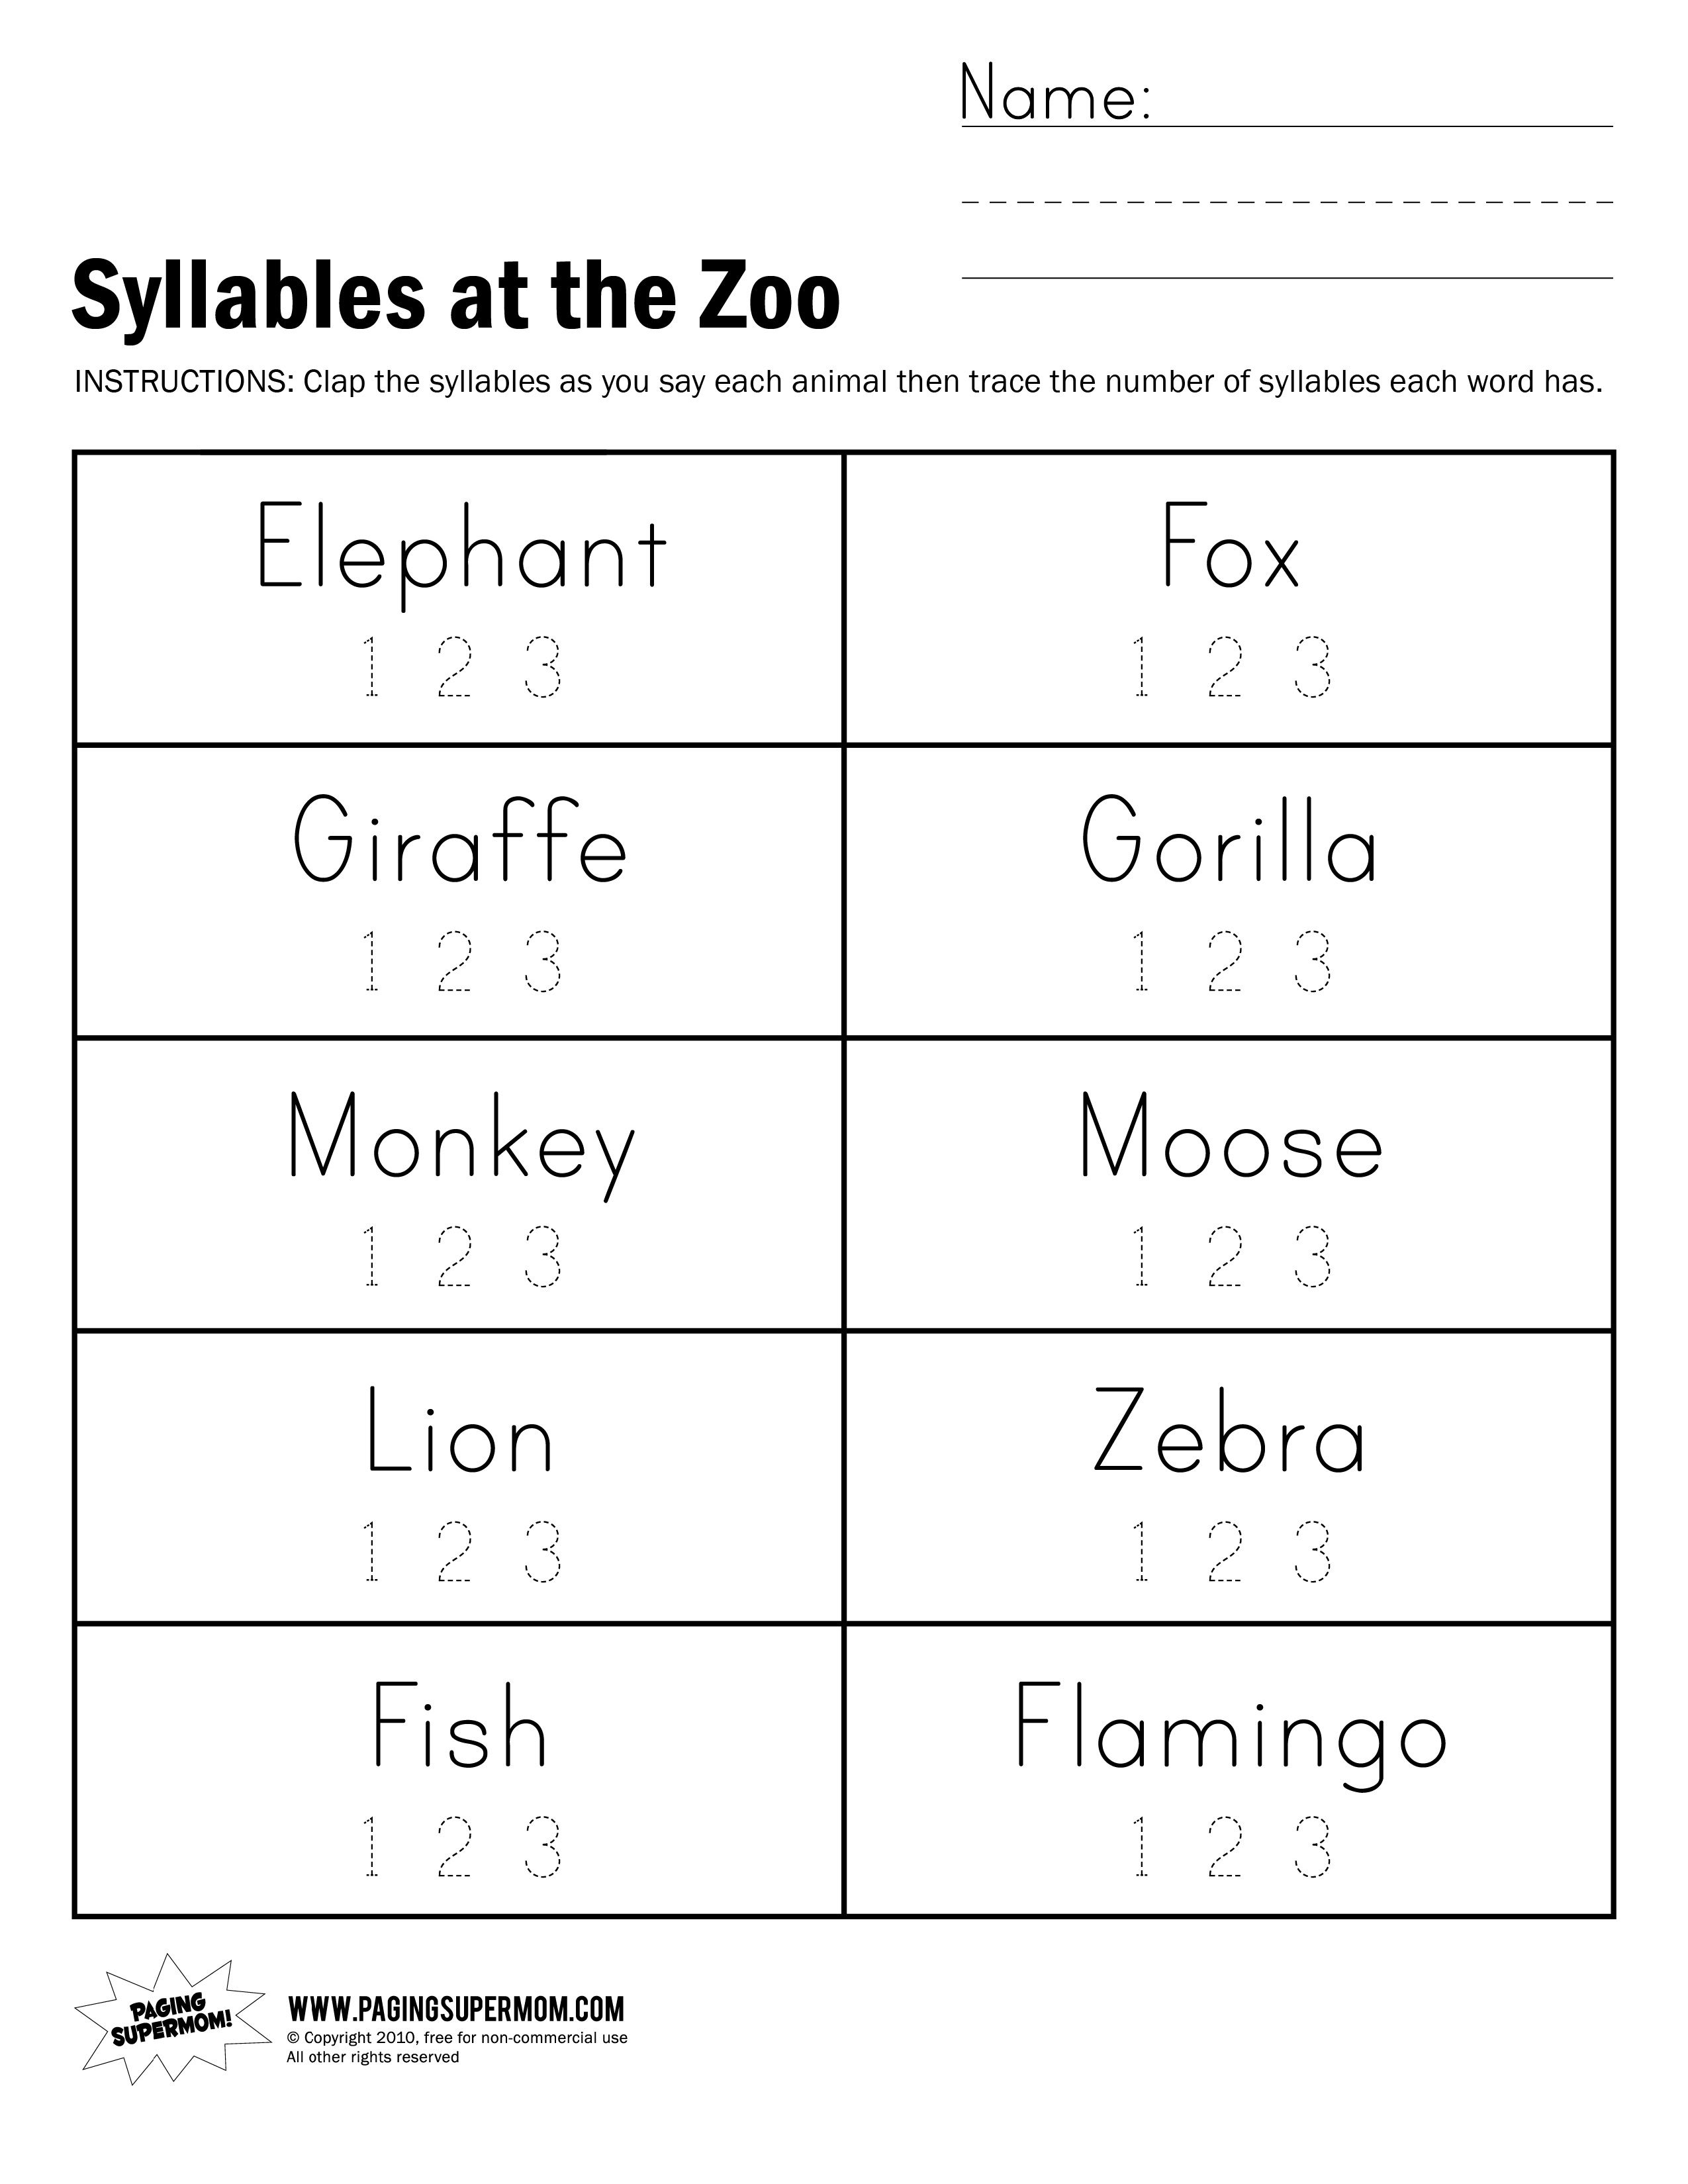 Syllables at the Zoo Worksheet   Syllable worksheet [ 3300 x 2550 Pixel ]